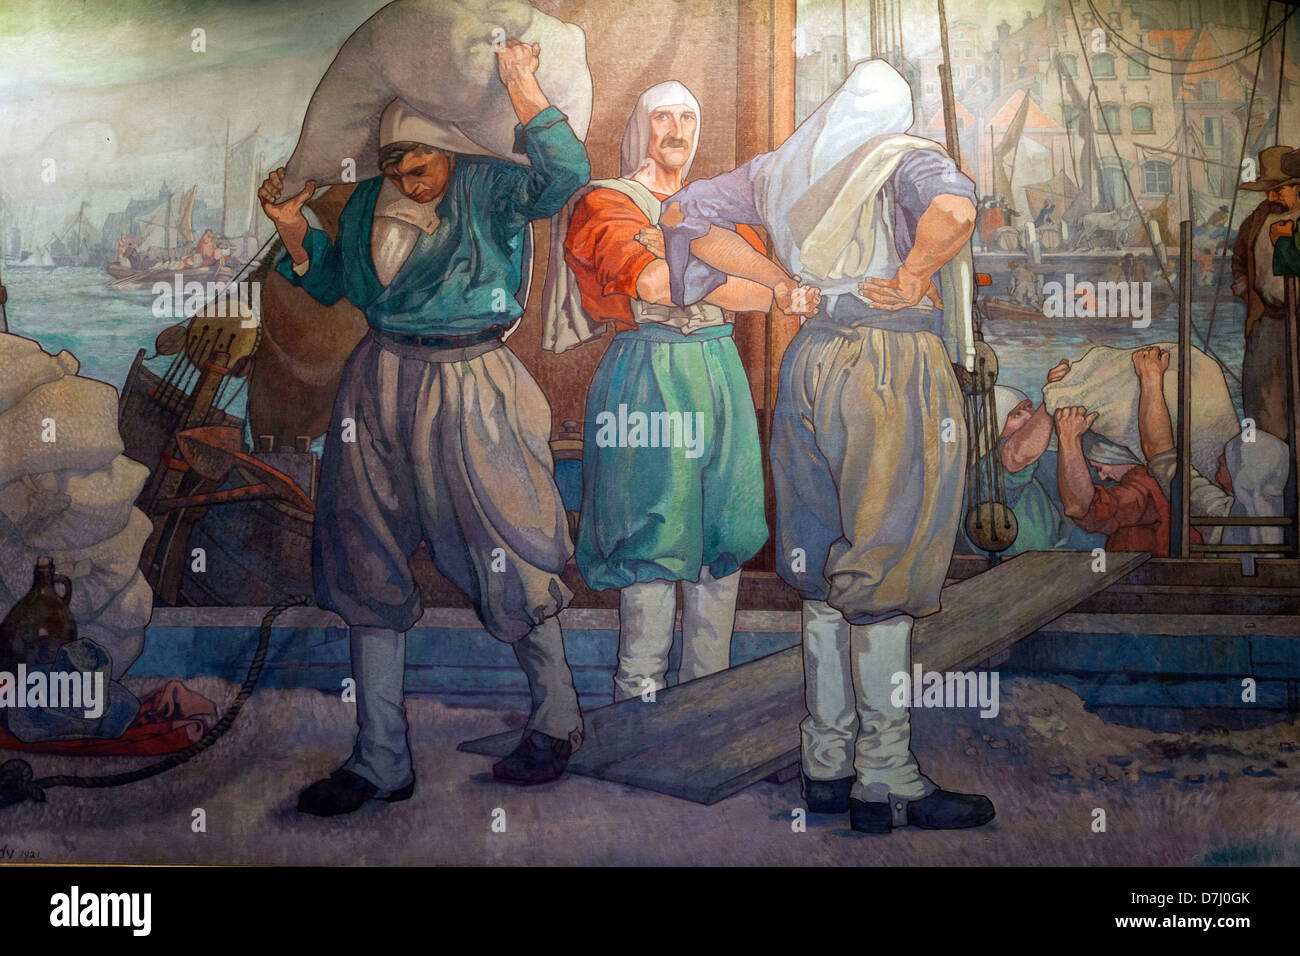 wall paining of reinier kenney in twonhall building, dordrecht, holland - Stock Image